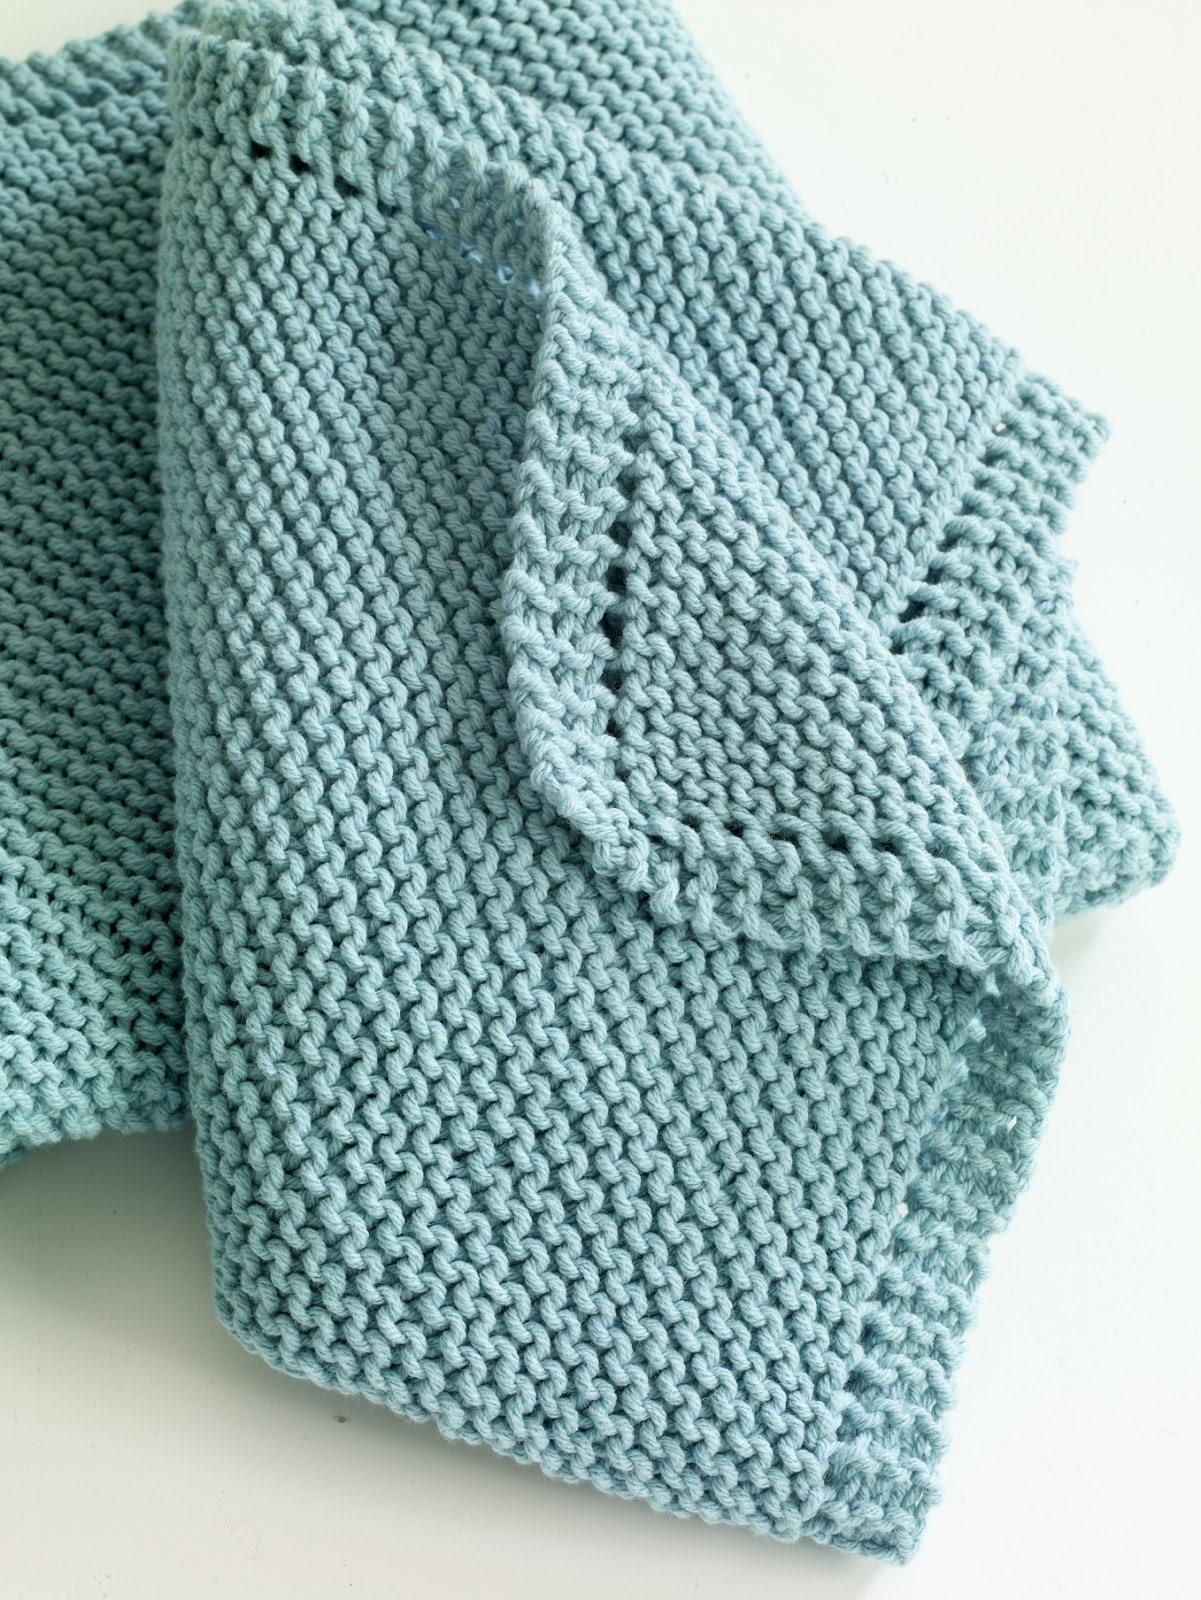 Free Knitting Patterns For Blankets And Throws : Serenity Knits